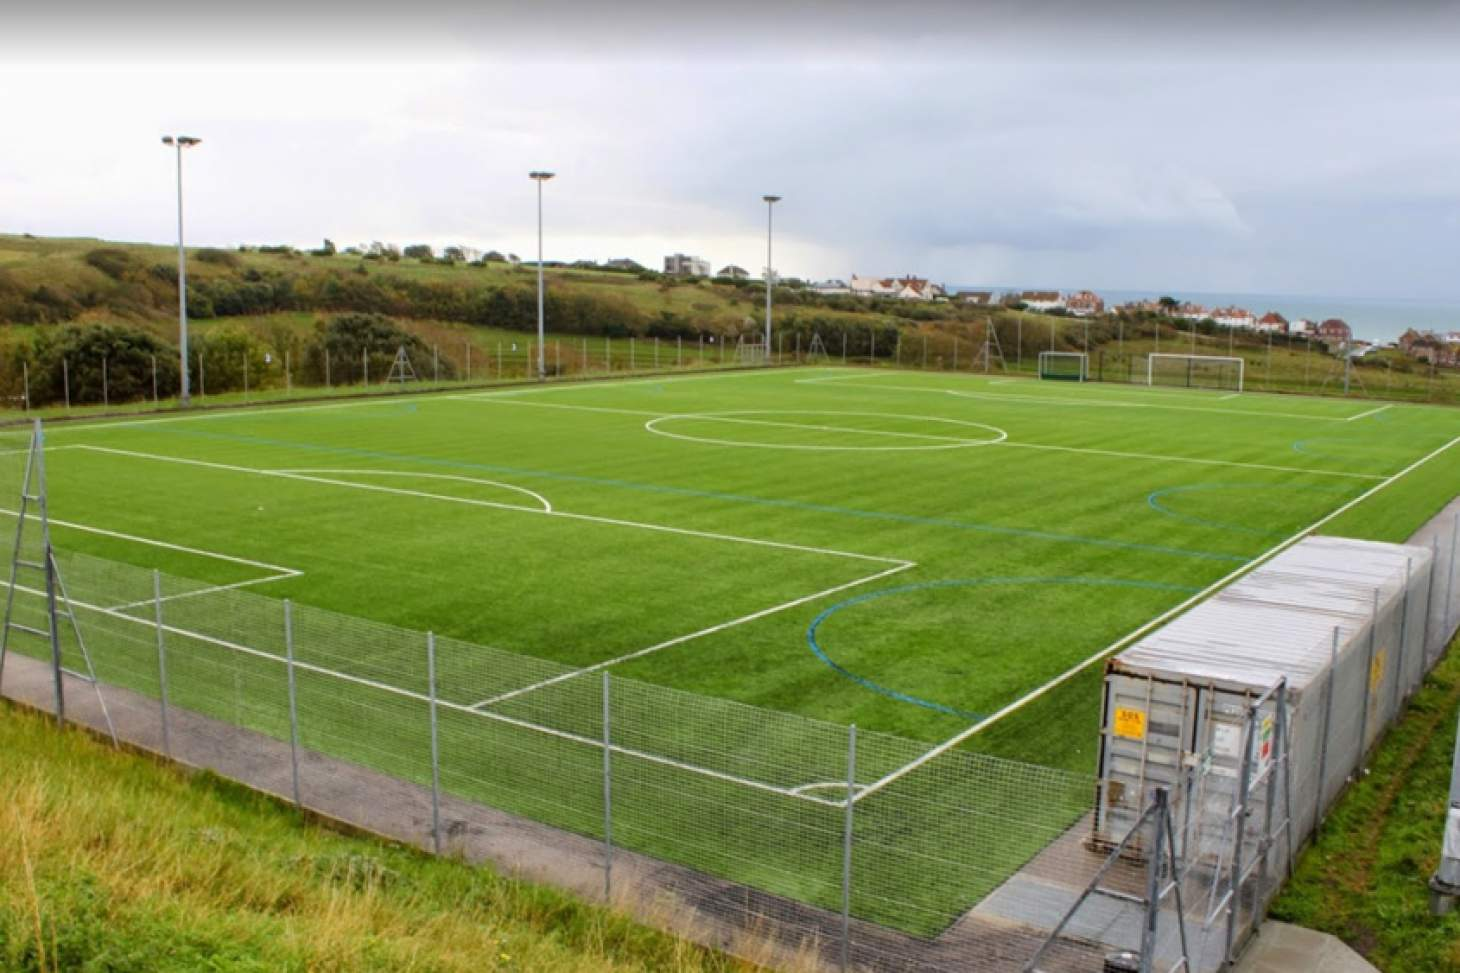 Stanley Deason Leisure Centre 11 a side | 3G Astroturf football pitch